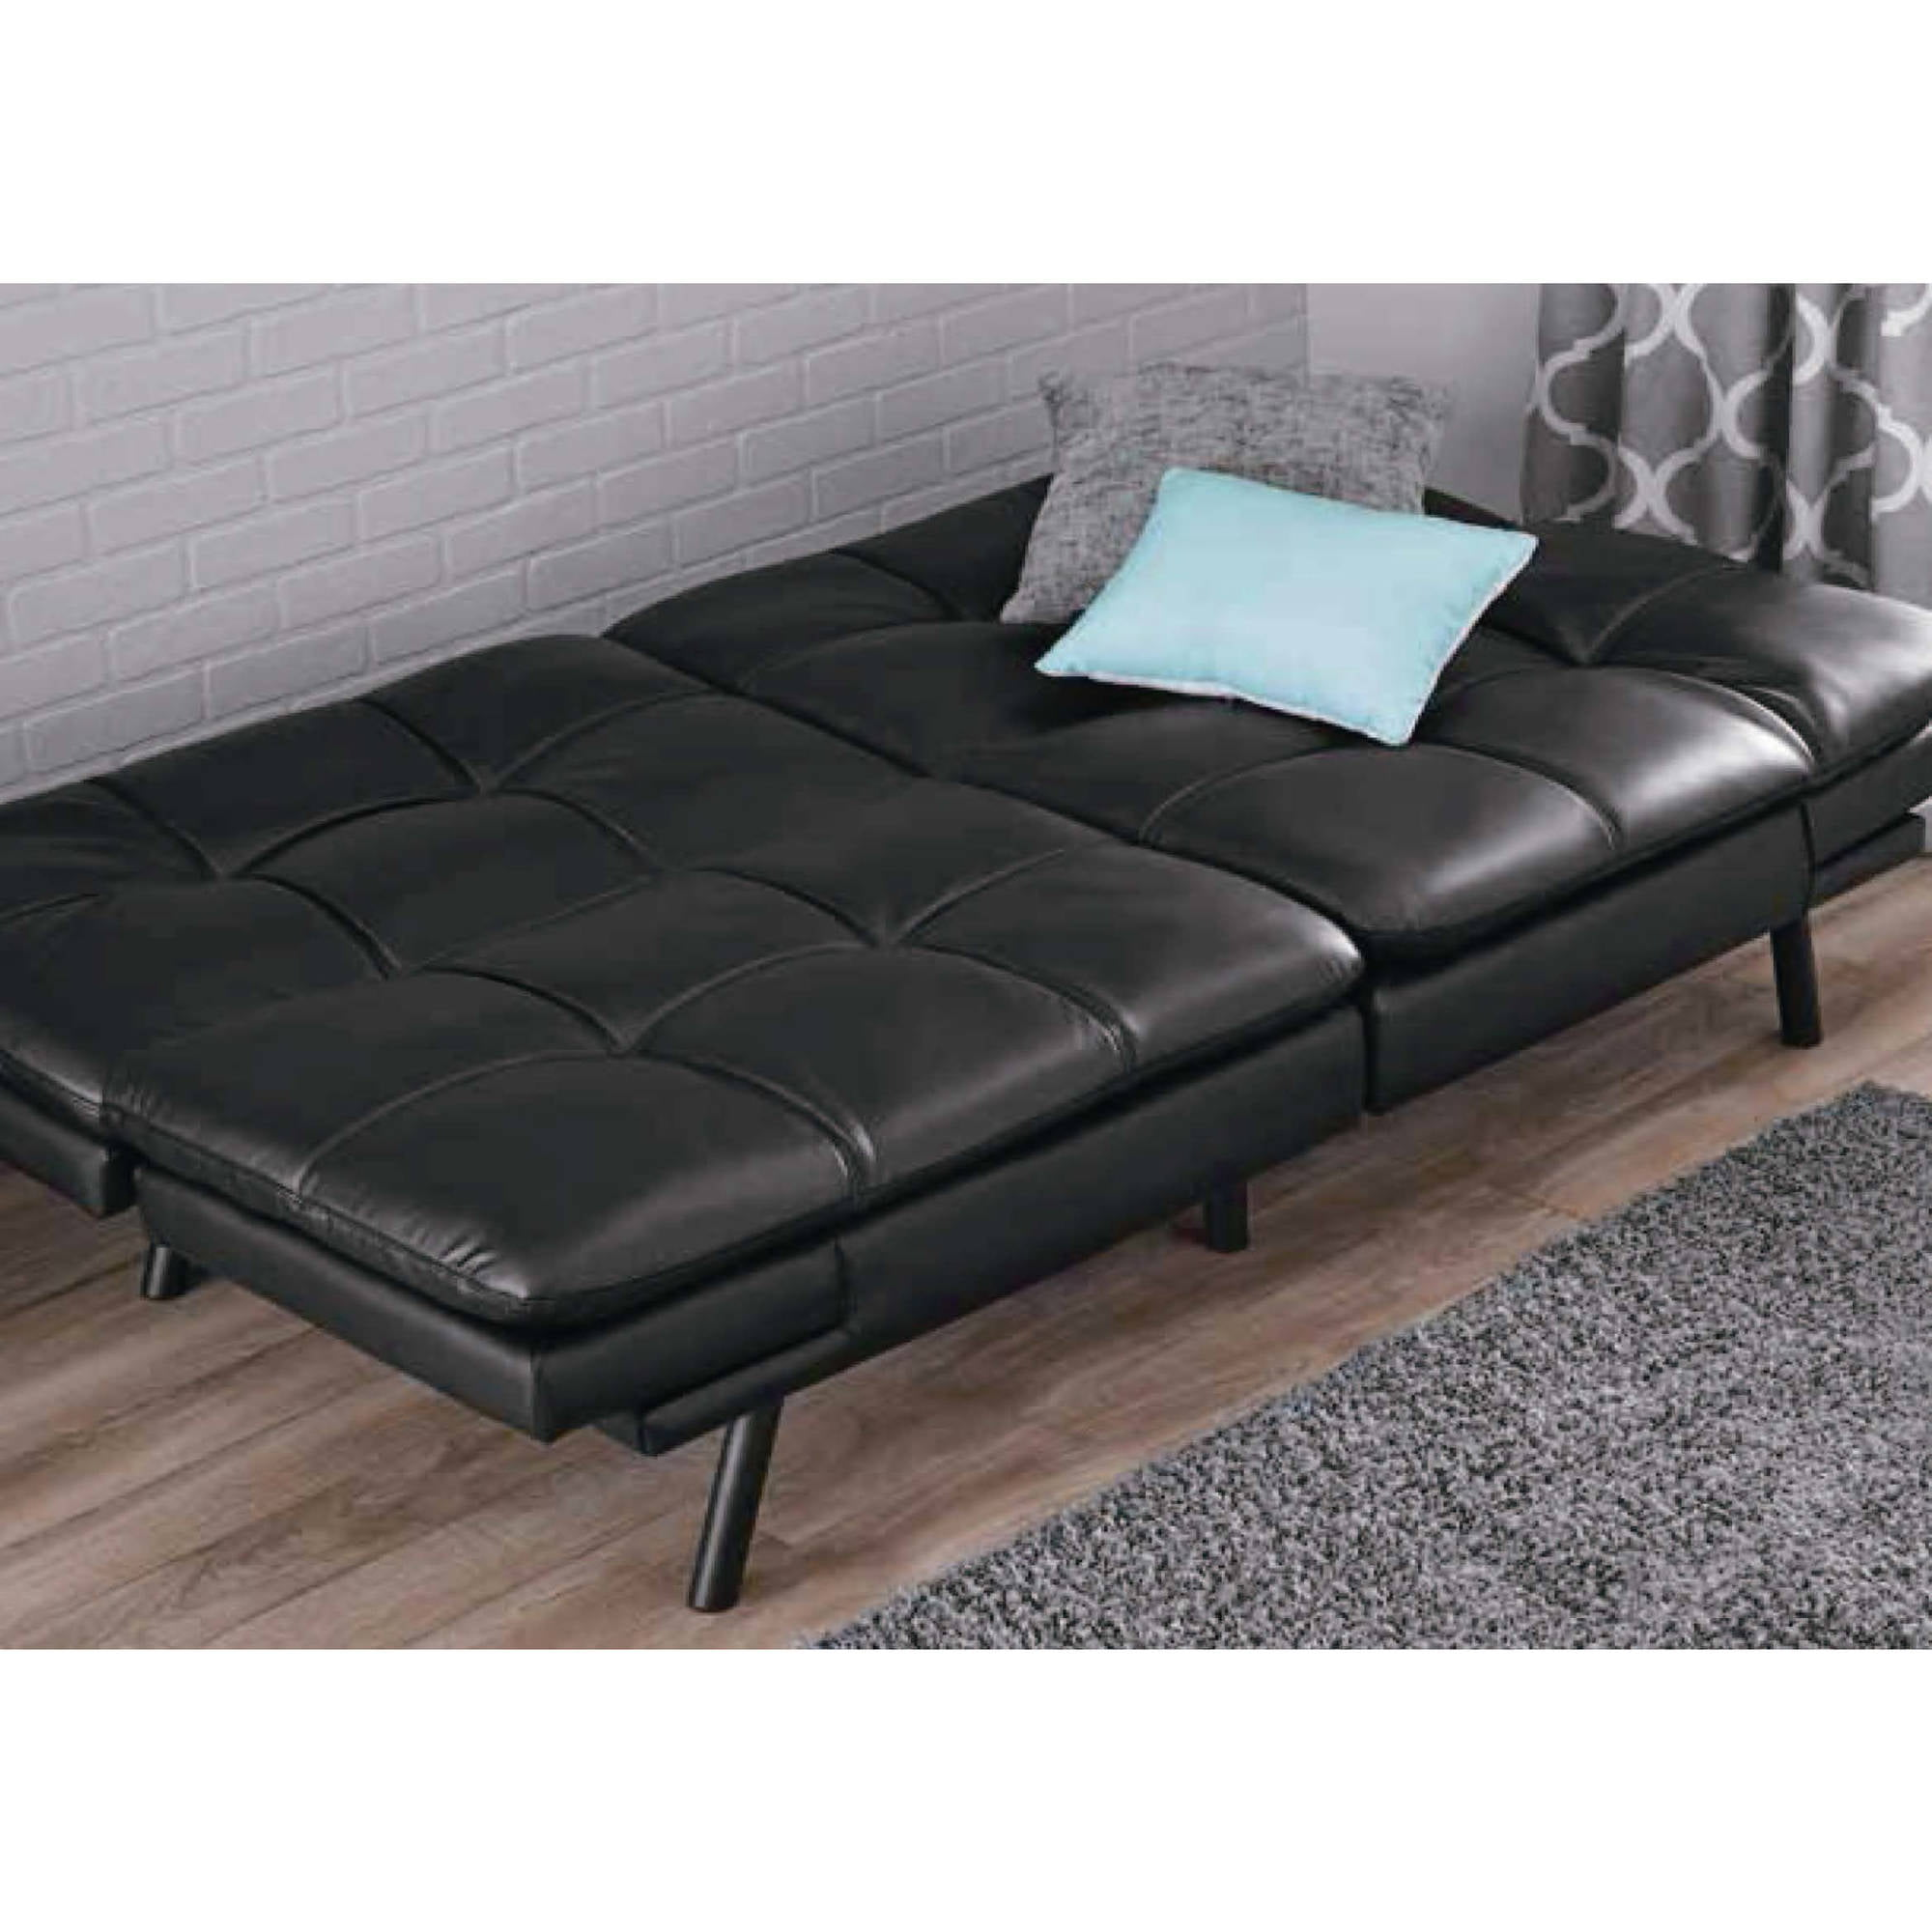 mainstays memory foam mattress black faux leather futon. Black Bedroom Furniture Sets. Home Design Ideas